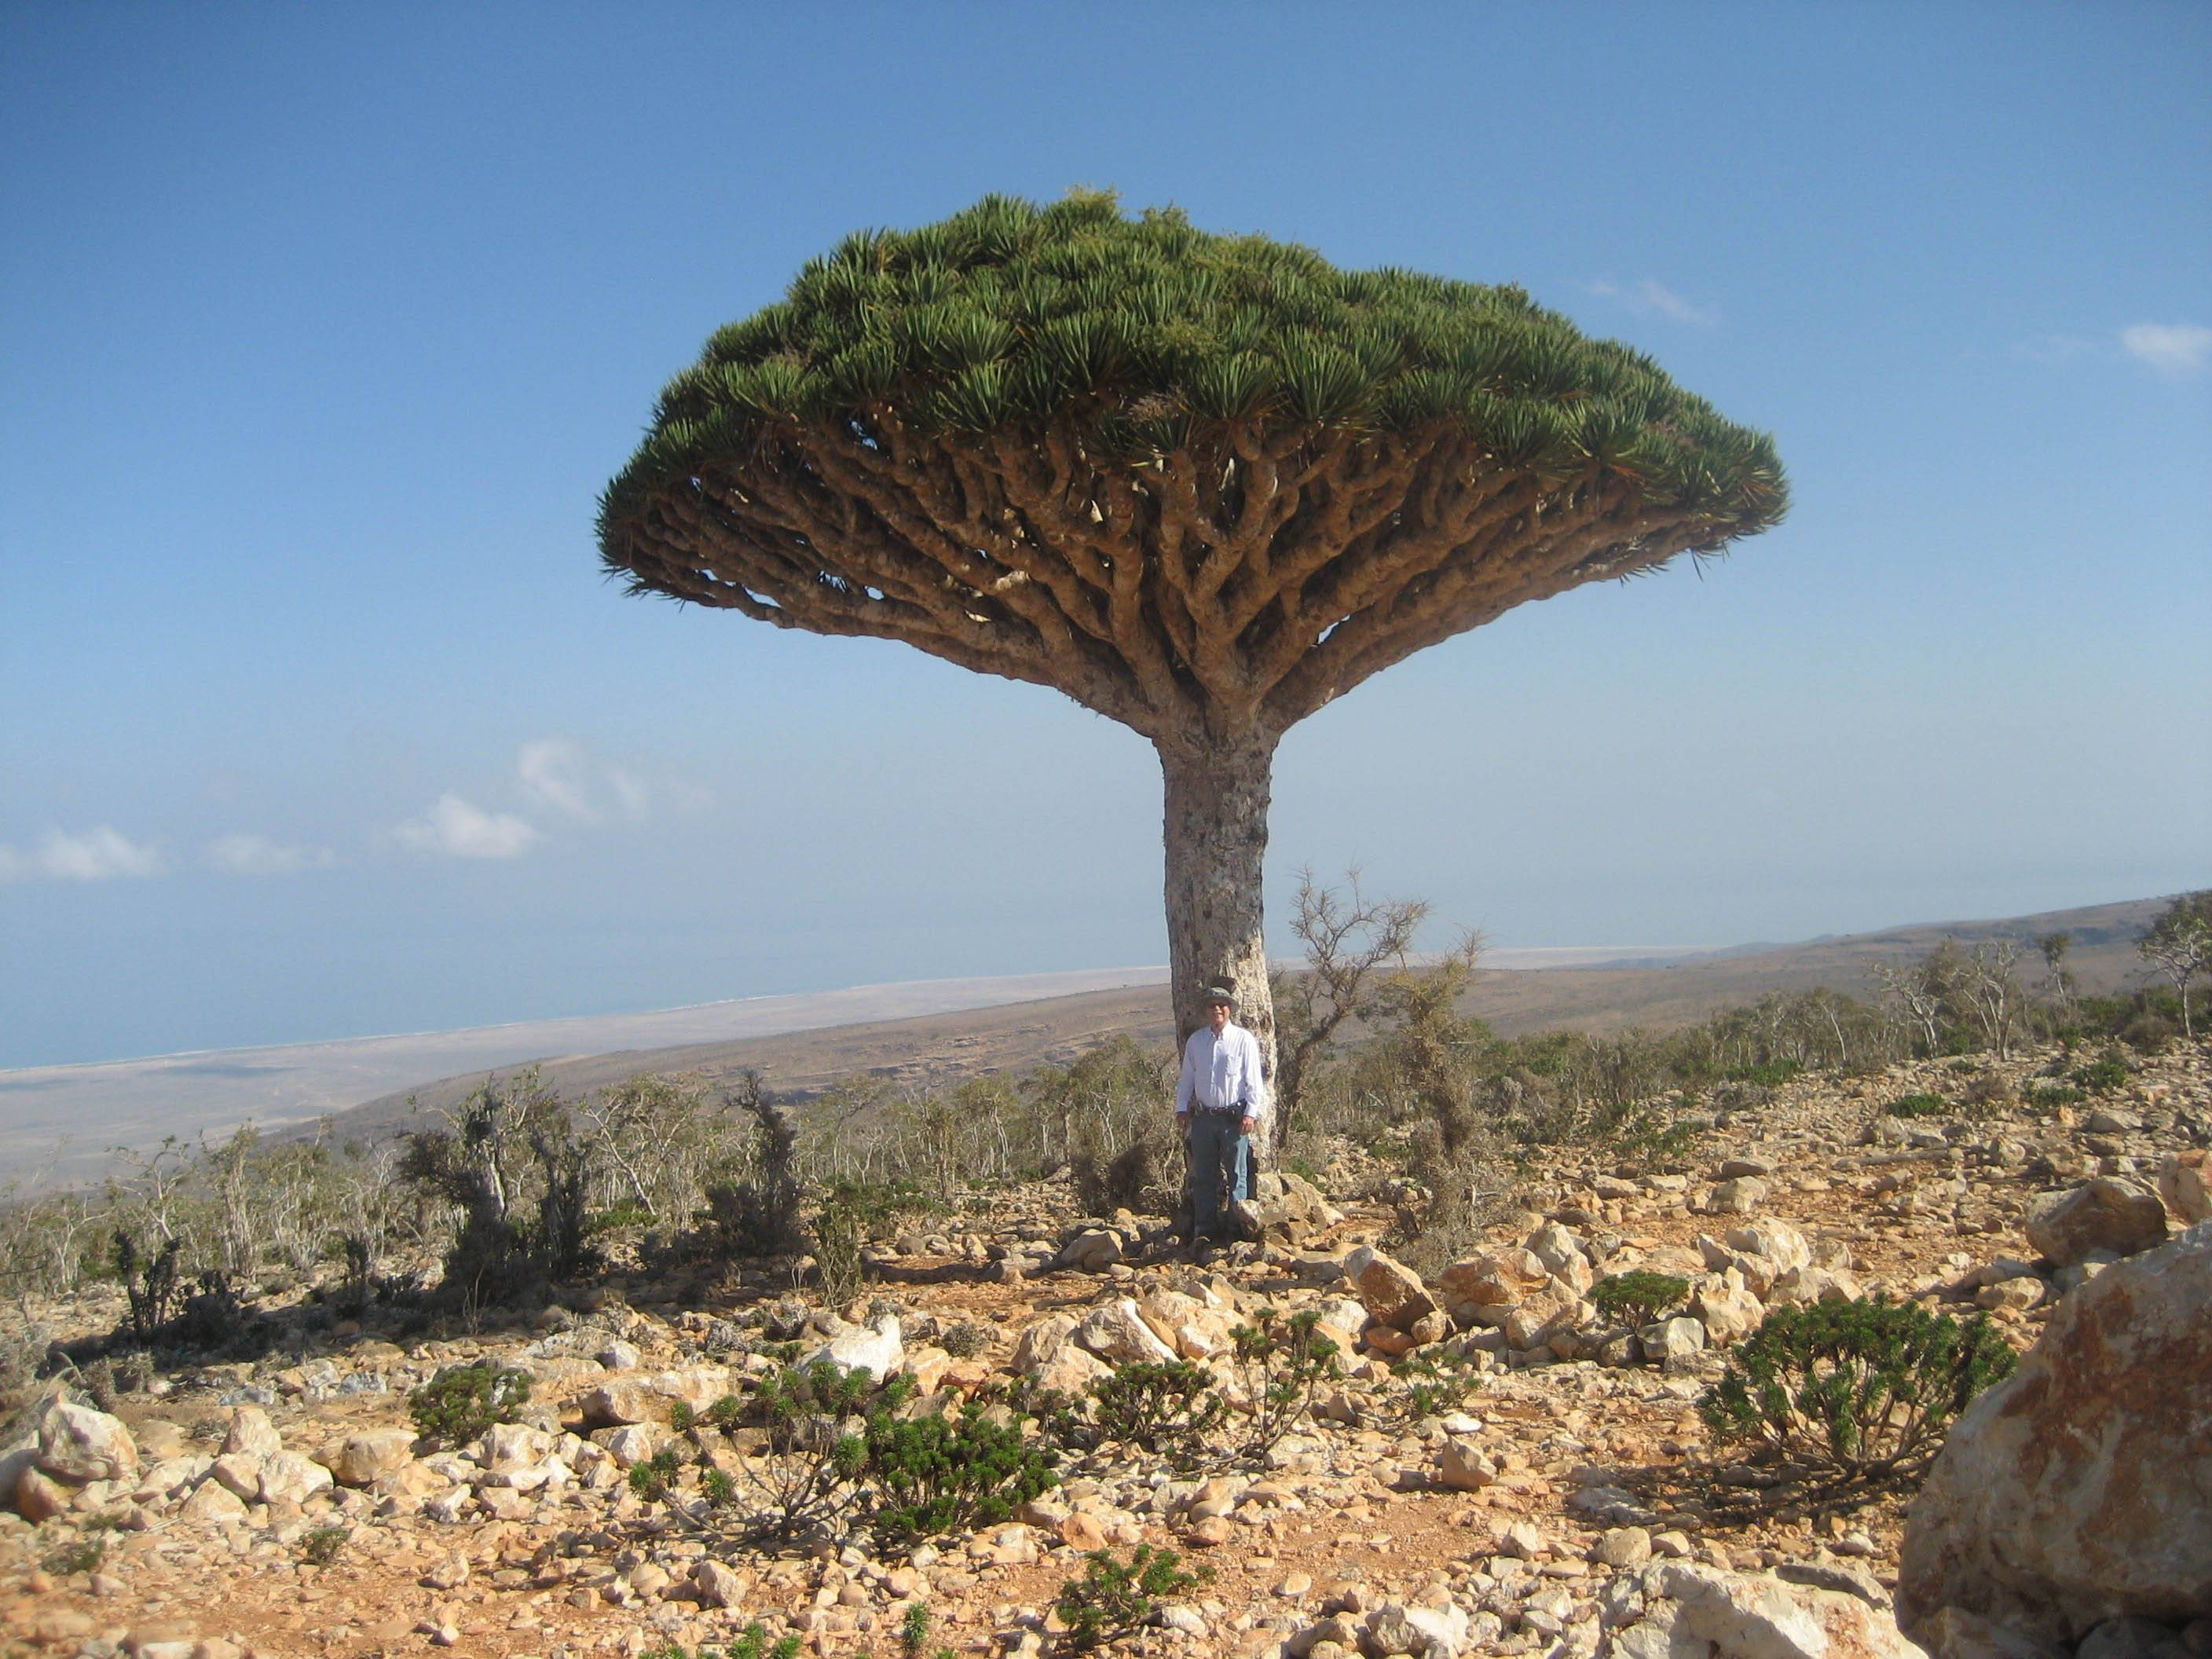 Don Parrish poses by a Dragon Blood tree on the island of Socotra.